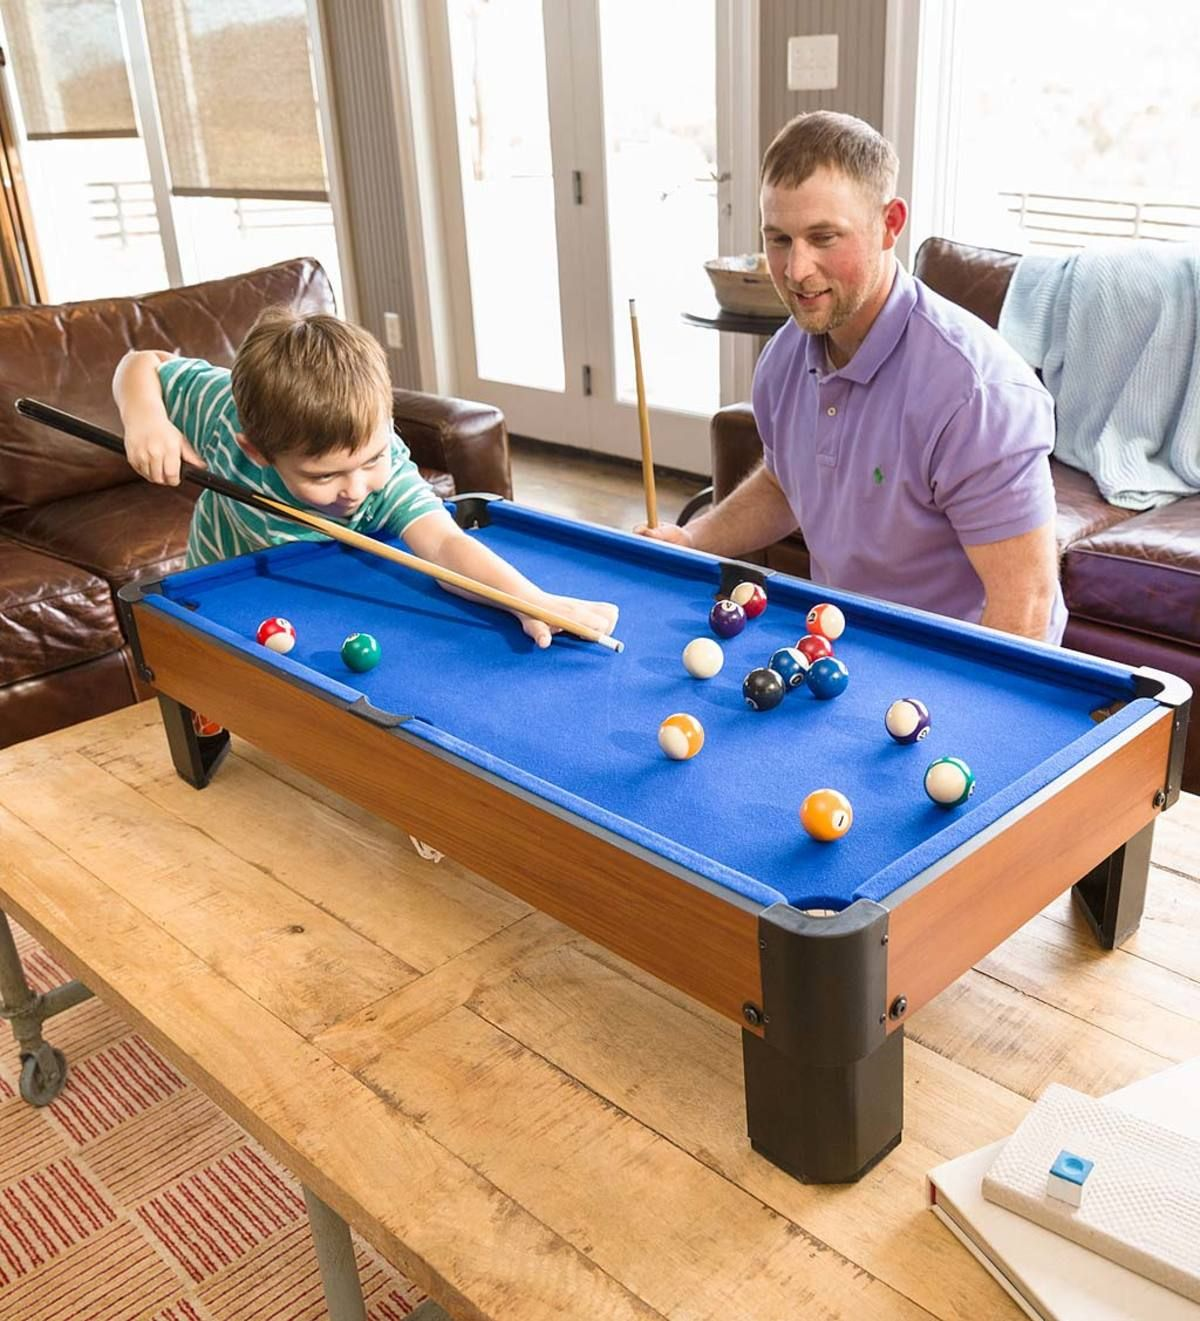 Play pool anywhere with this Tabletop Pool Set. All you